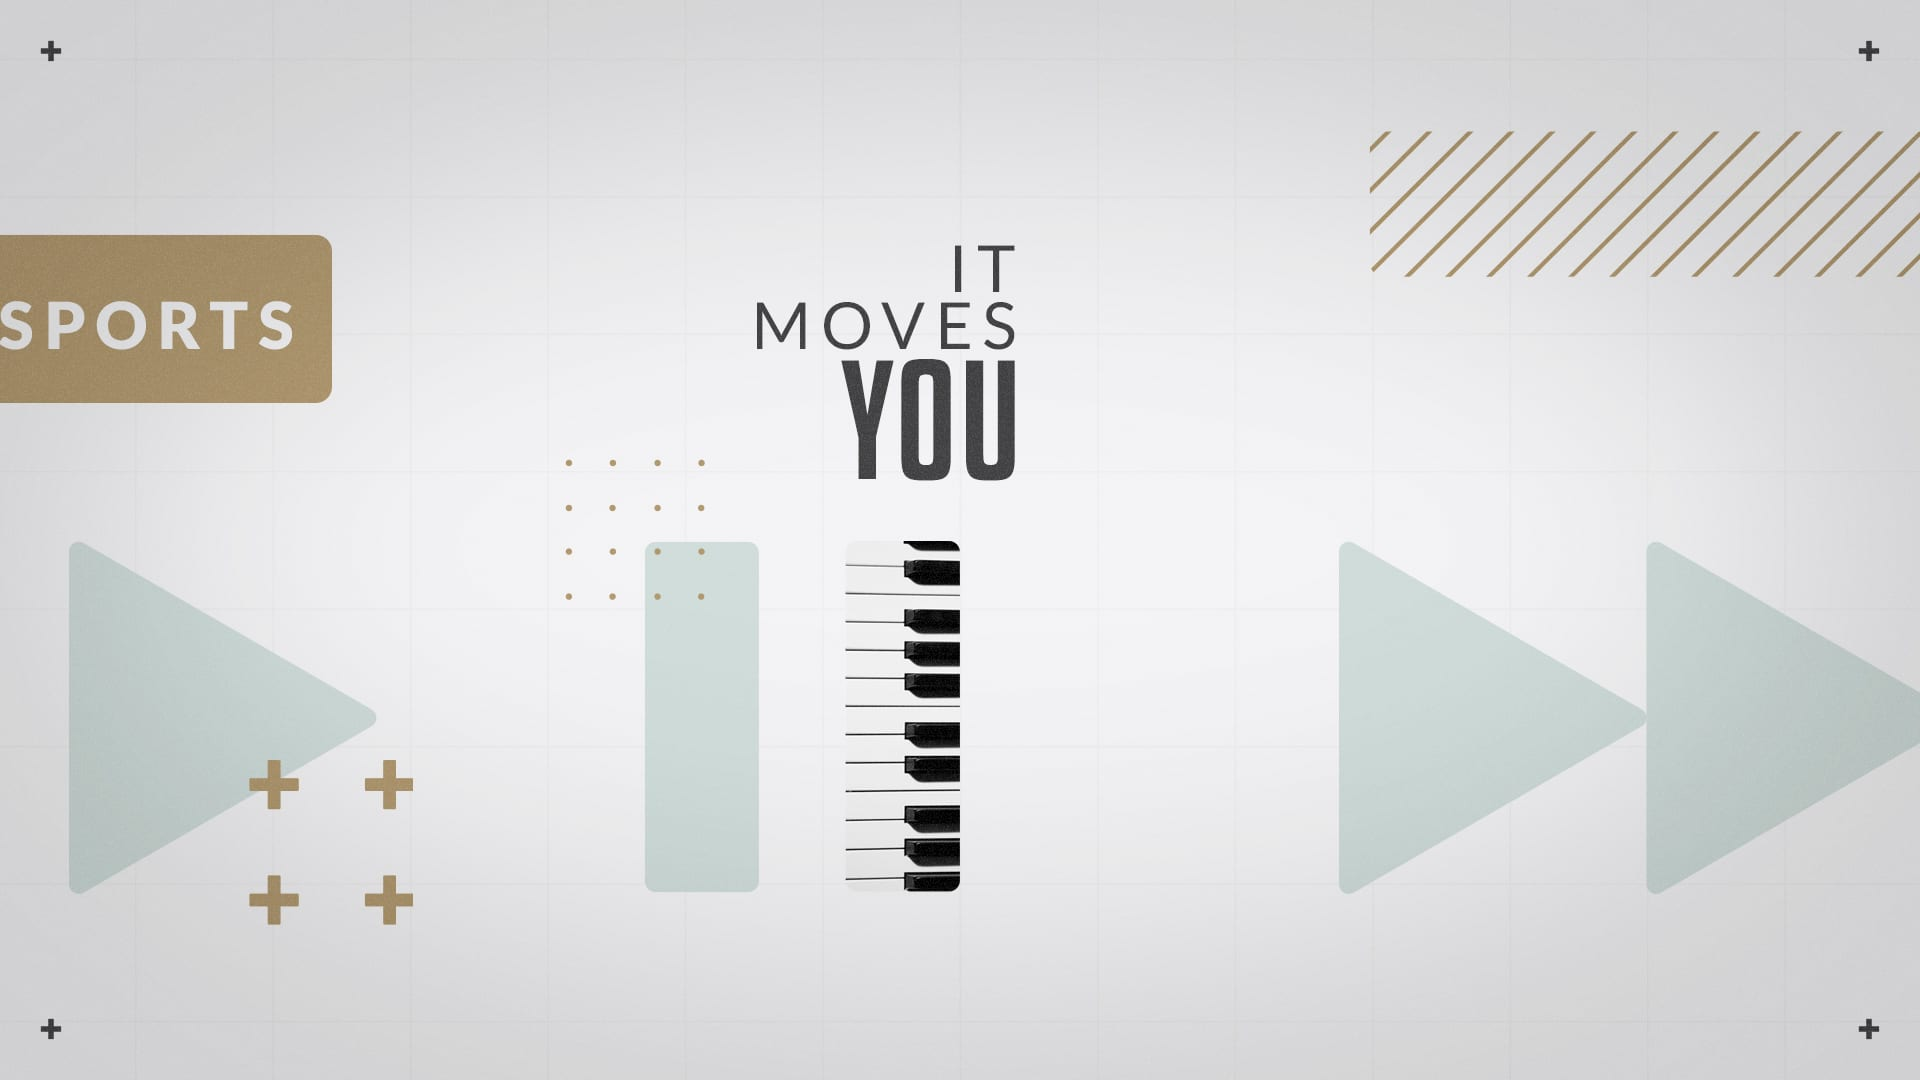 B07 – It moves you